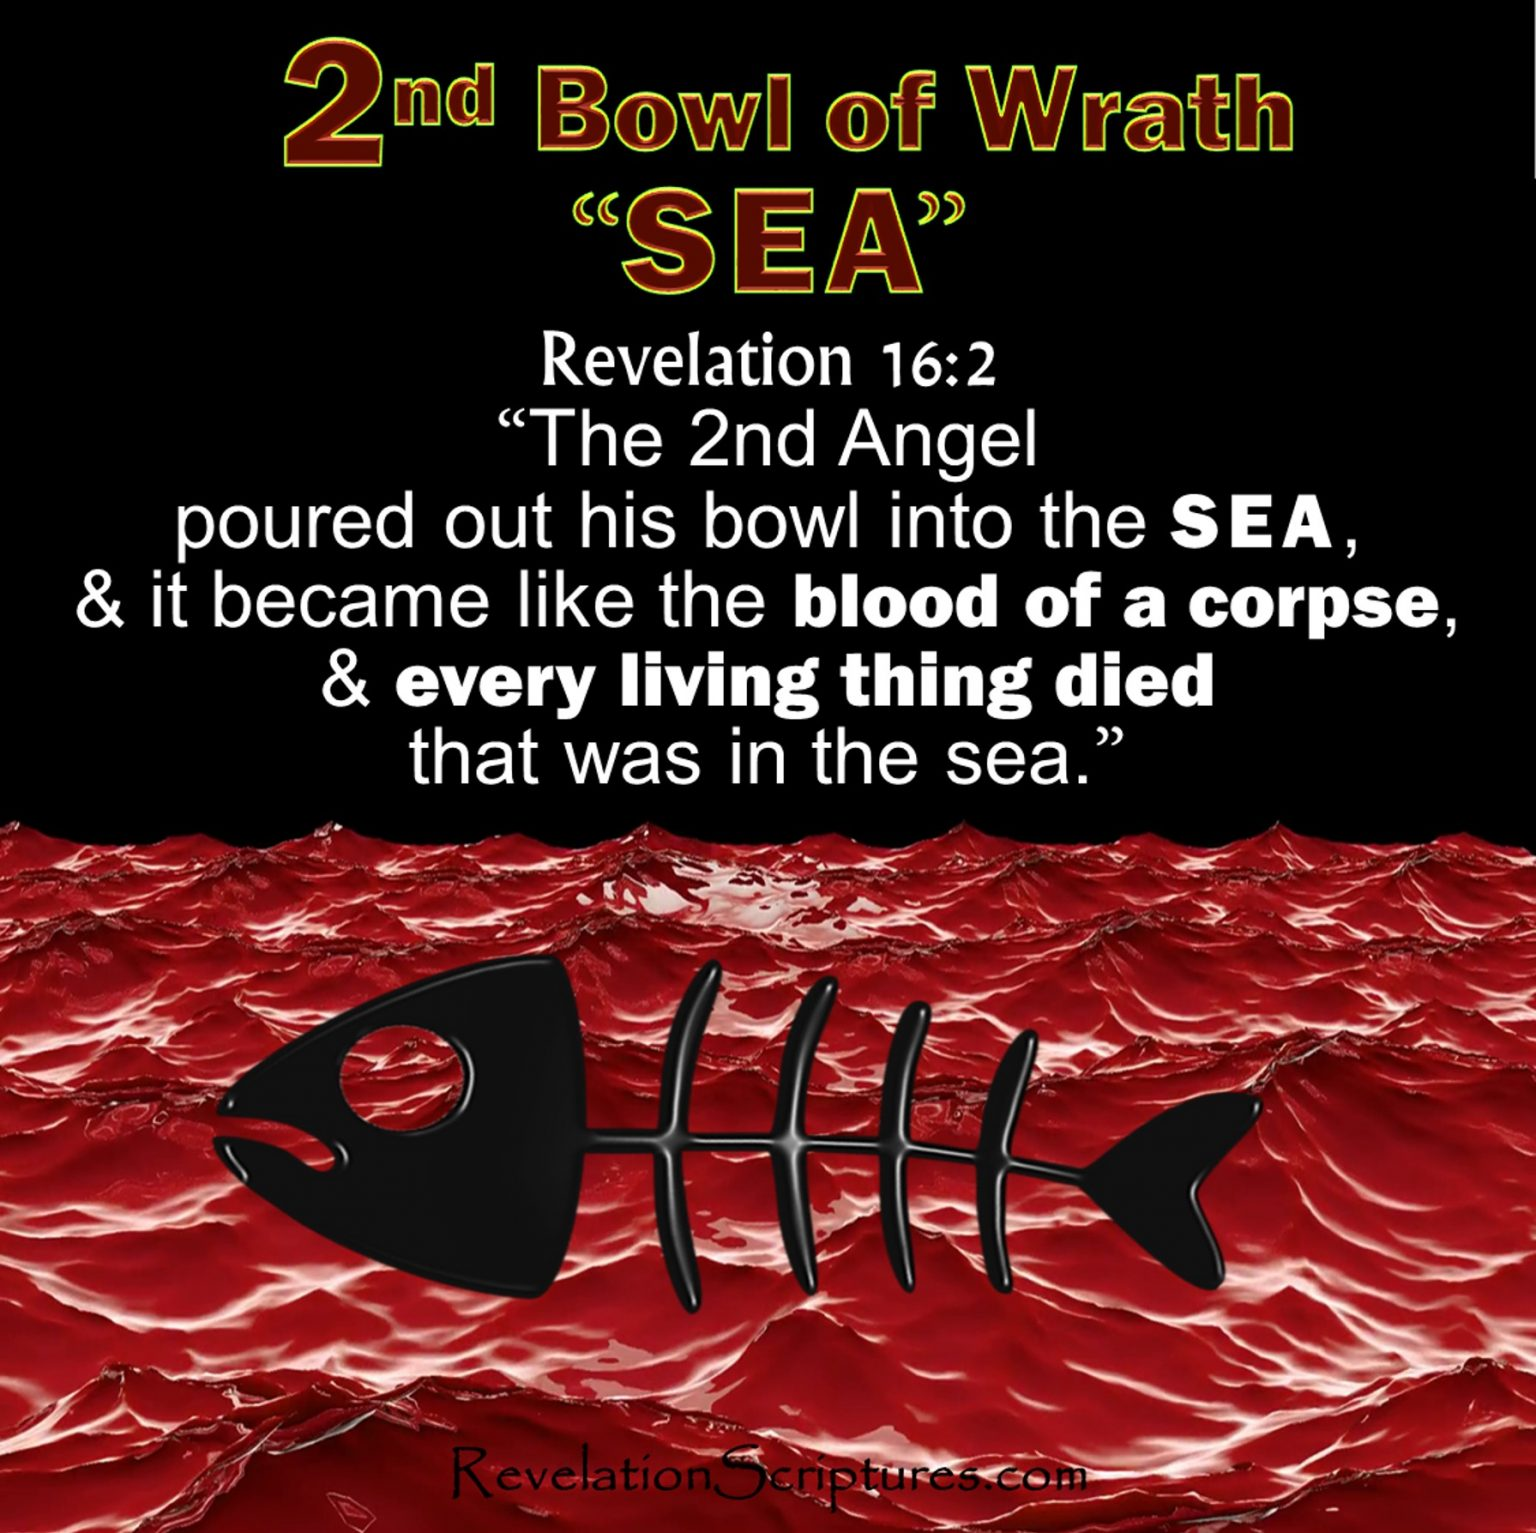 Second Vial, Second Bowl, 2nd Vial,2nd Bowl,wrath,Sea Blood,Everything Died,Corpse,Seven Bowls Vials of Wrath,Book of Revelation, Apocalypse,Revelation Chapter 16